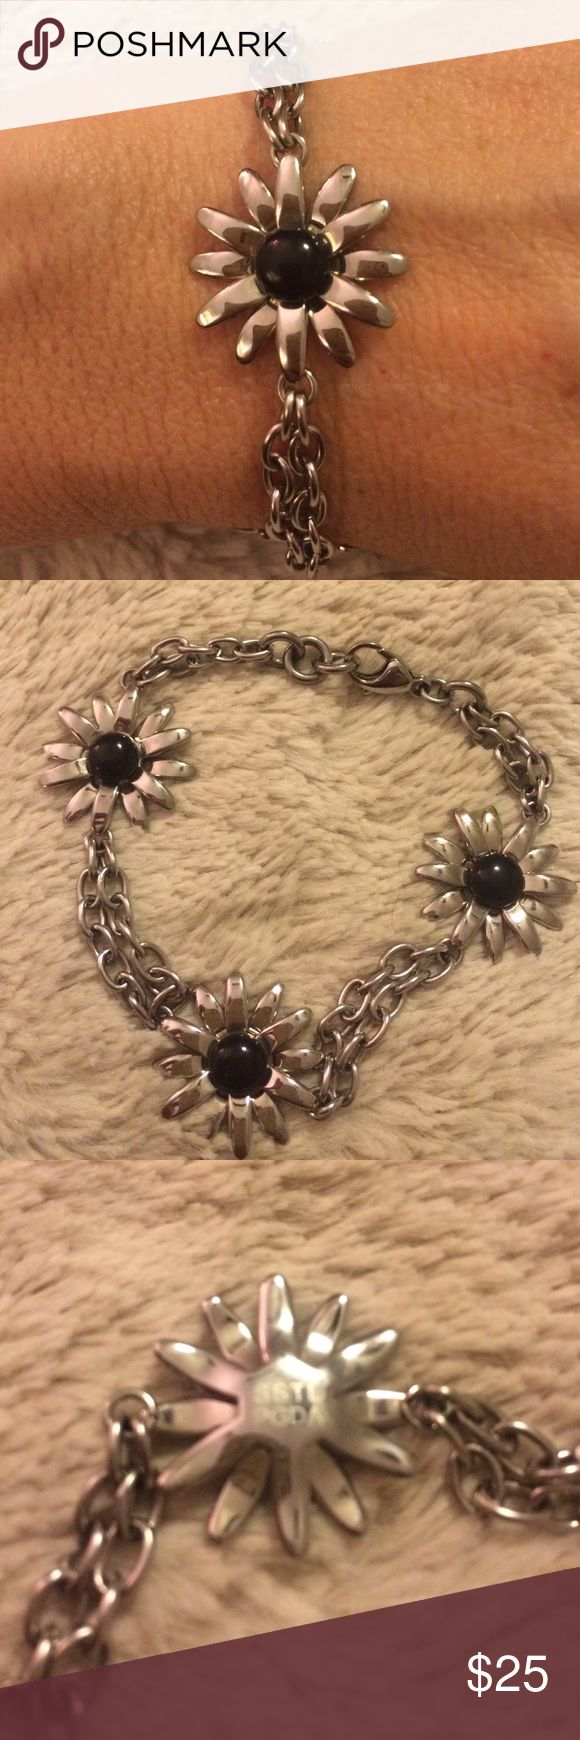 Stainless Steel Piercing Pagoda Bracelet Stainless Steel bracelet with 3 daisies-black in center. Double strand. Measures 7.5 inches. Lobster clasp Piercing Pagoda  Jewelry Bracelets